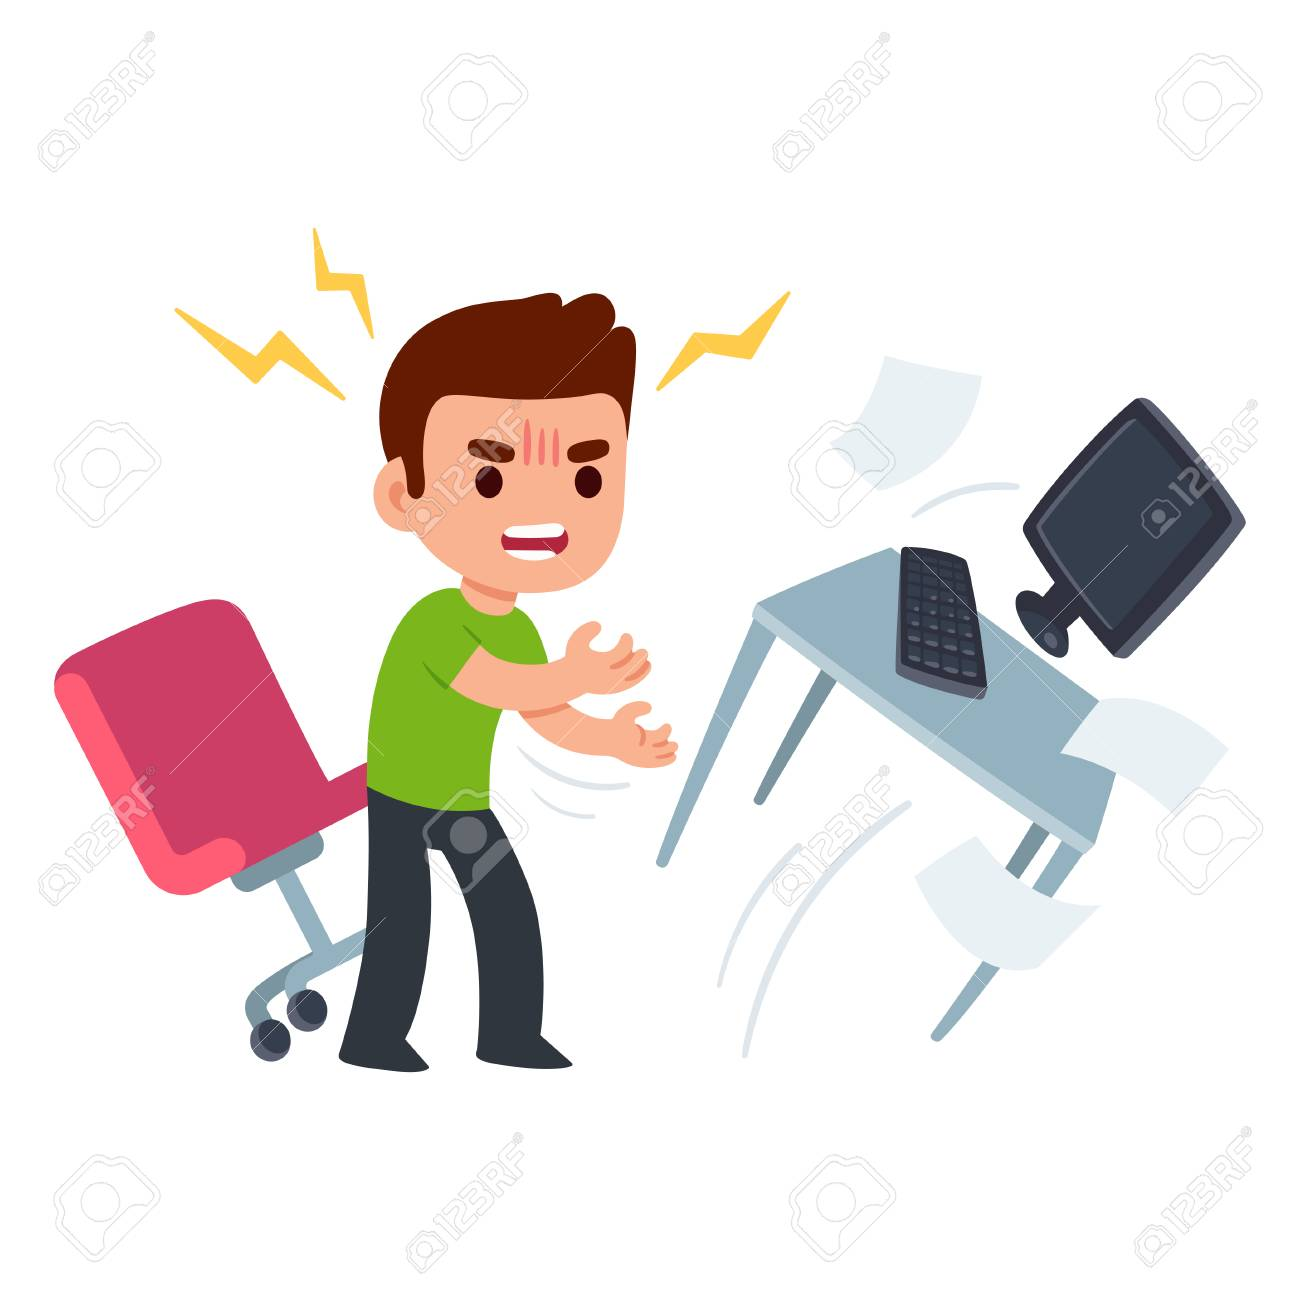 Angry young man at work flipping desk in frustration. Funny flat cartoon vector illustration. - 90473270